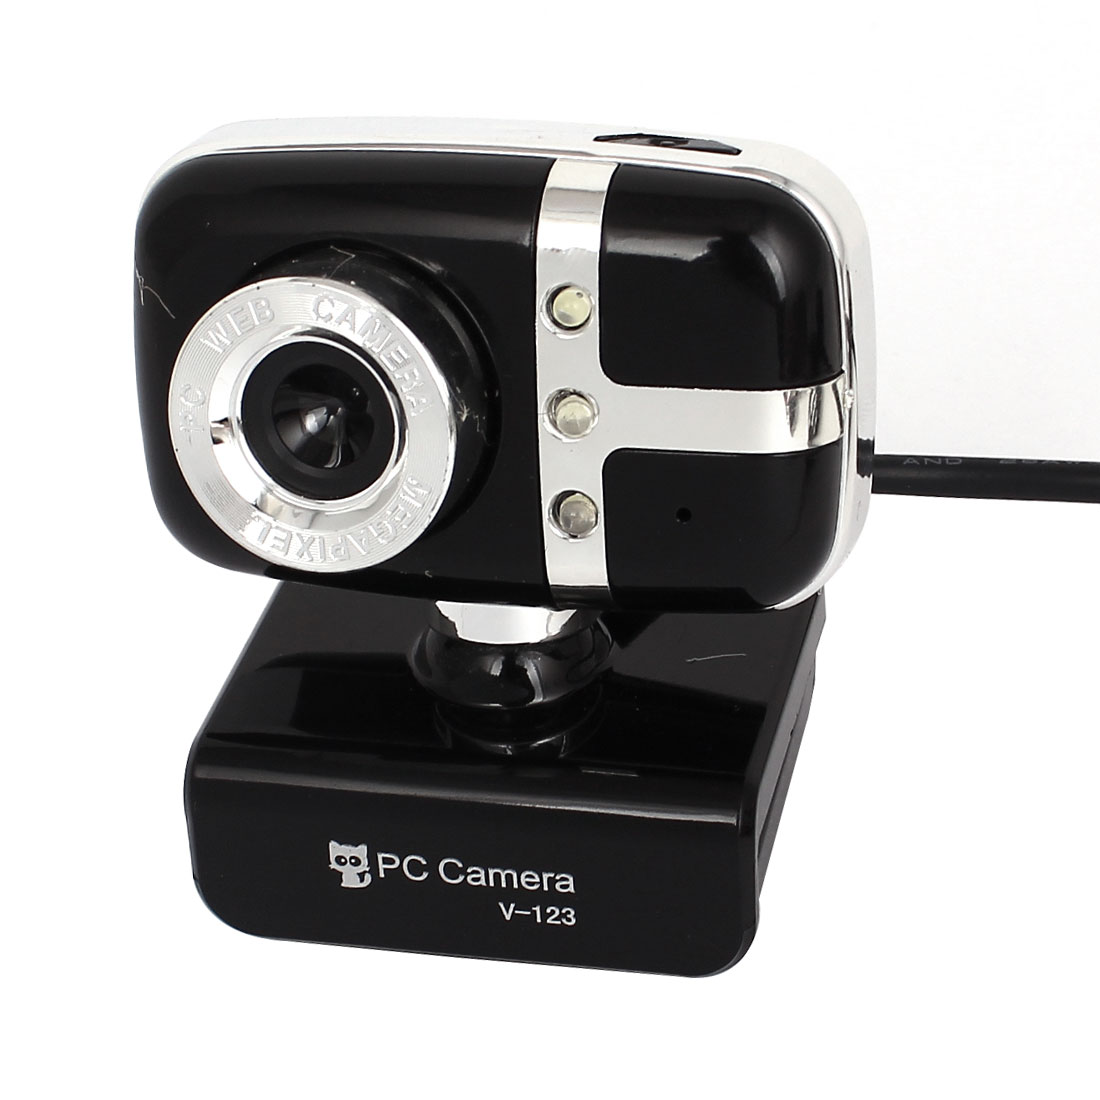 Plastic Shell 3 LED Rotatable Clip-on USB 2.0 Webcam PC Camera